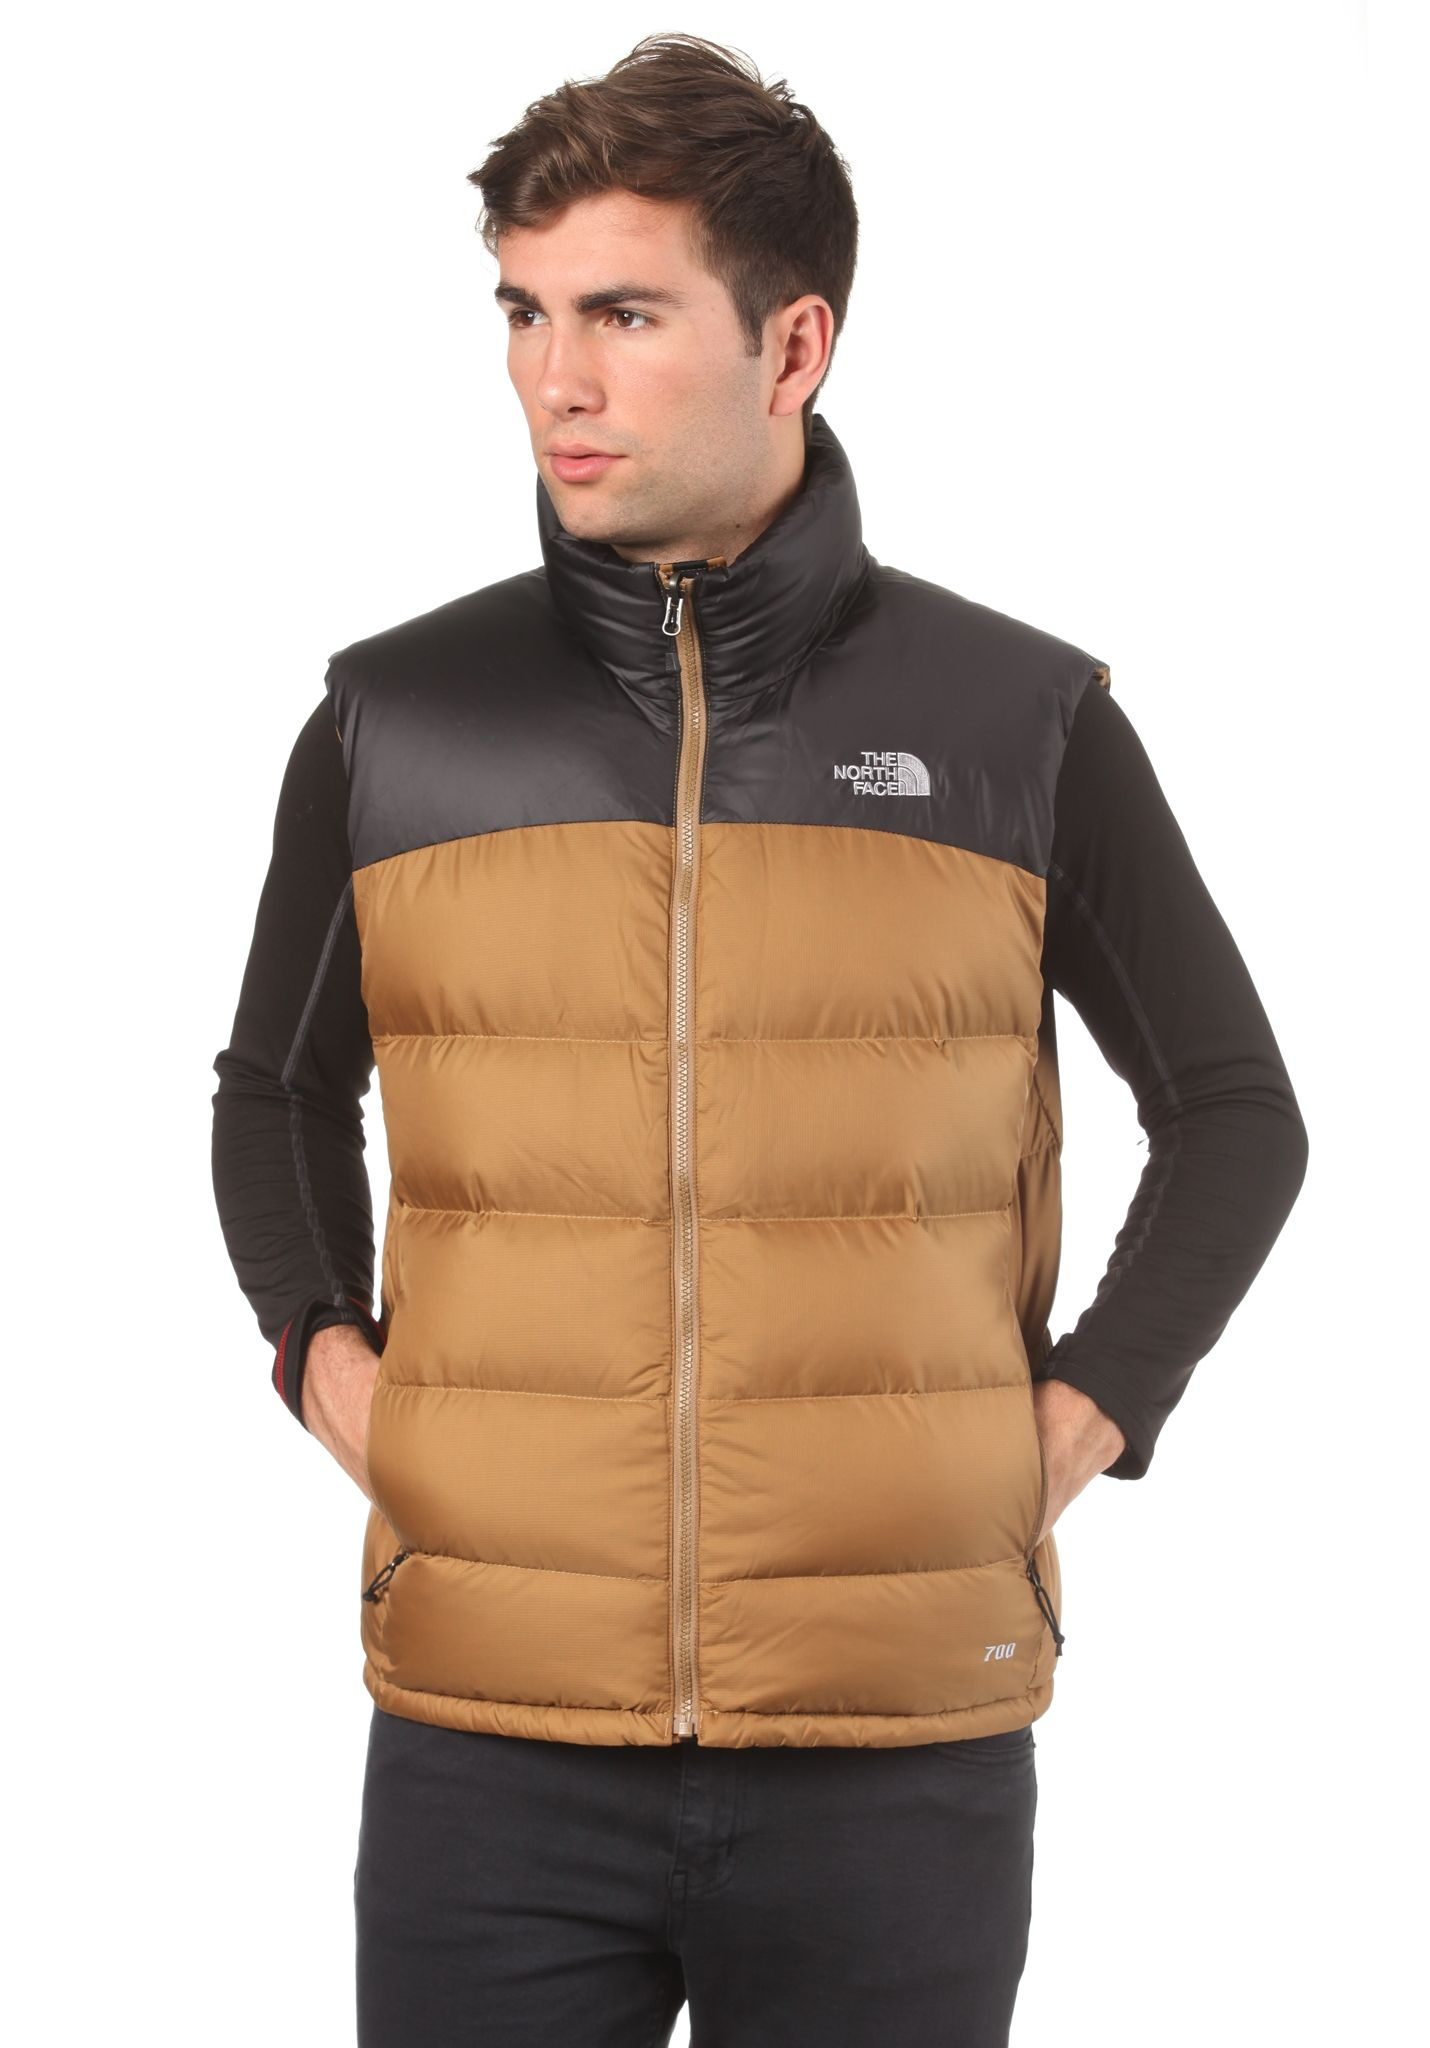 a201bad1a1 THE NORTH FACE Nuptse 2 - Outdoor Vest for Men - Brown - Planet Sports